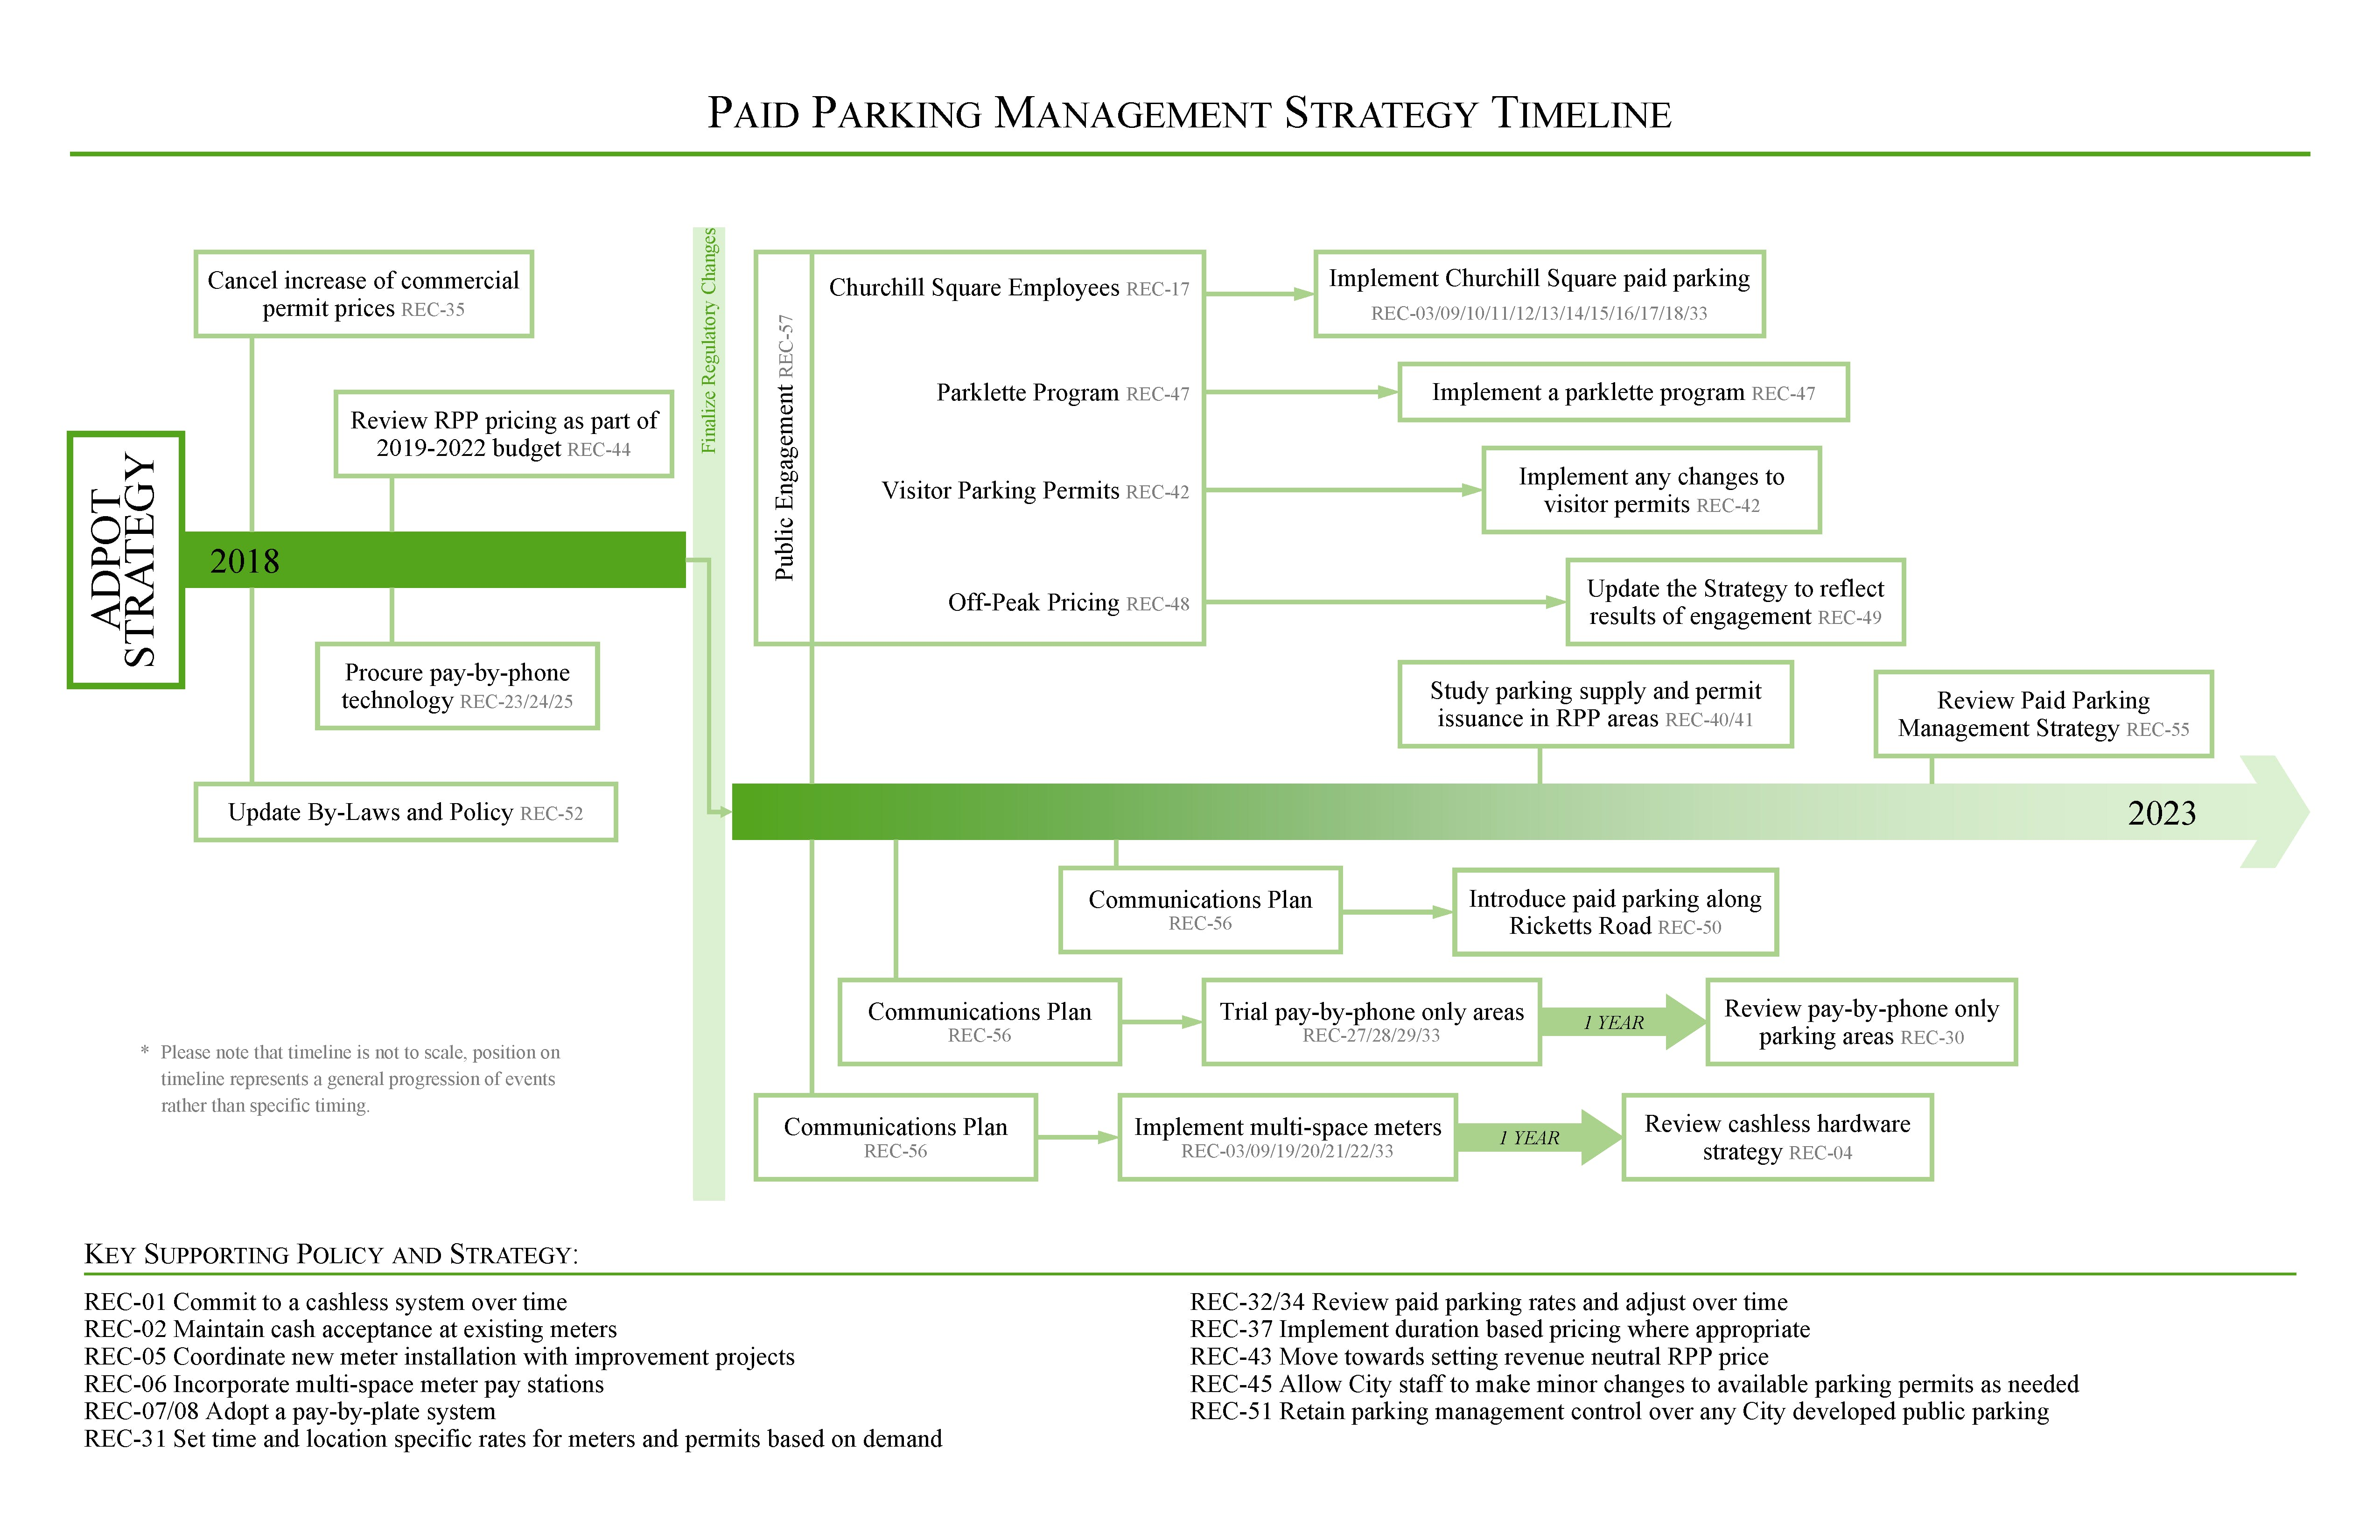 Paid Parking Manage Timeline